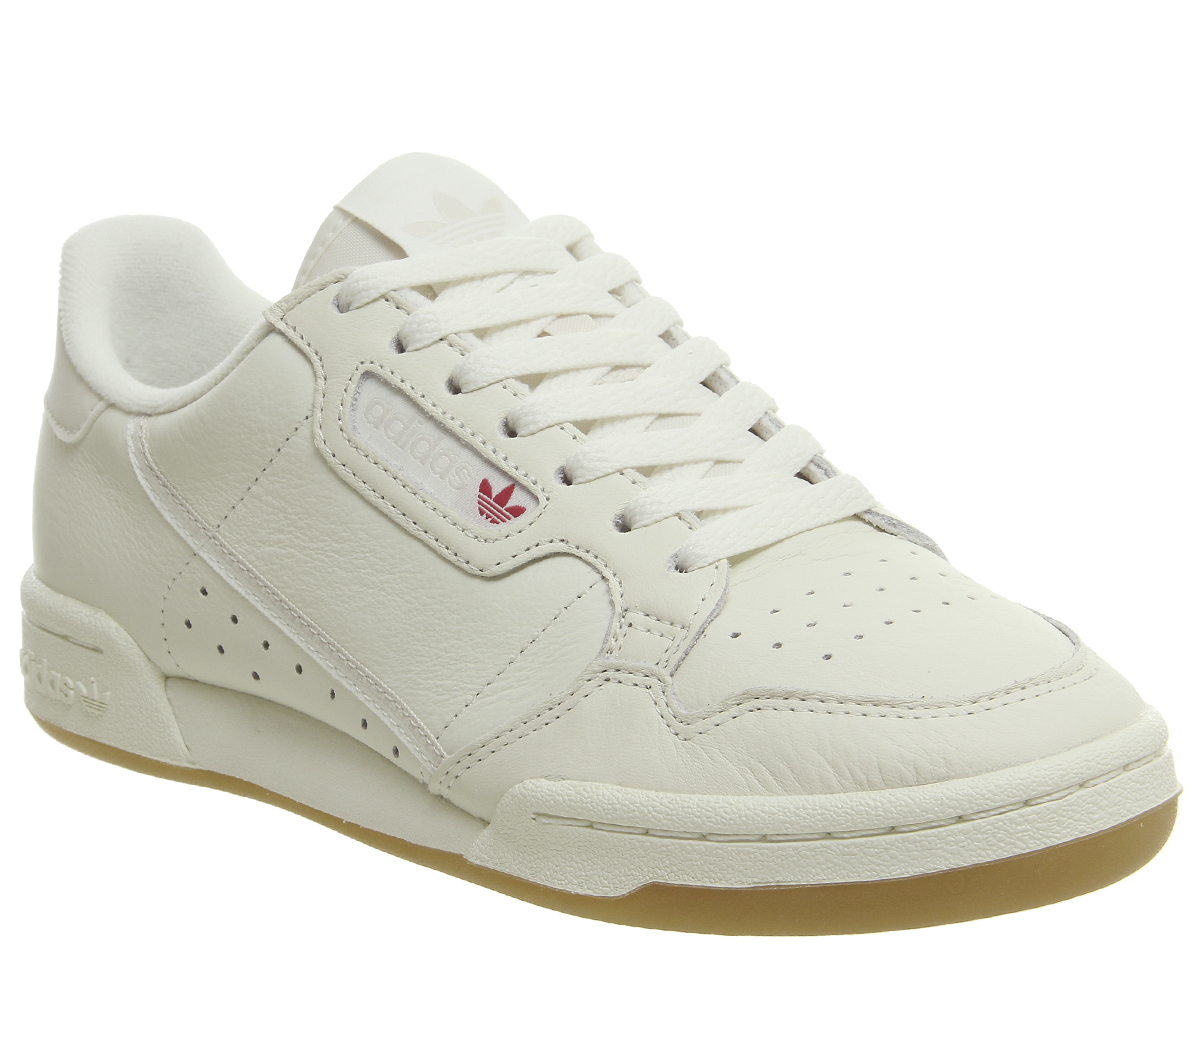 db647ac2e884 Sentinel Thumbnail 1. Sentinel Adidas 80S Continental Trainers Off White  Raw White Gum Shoes